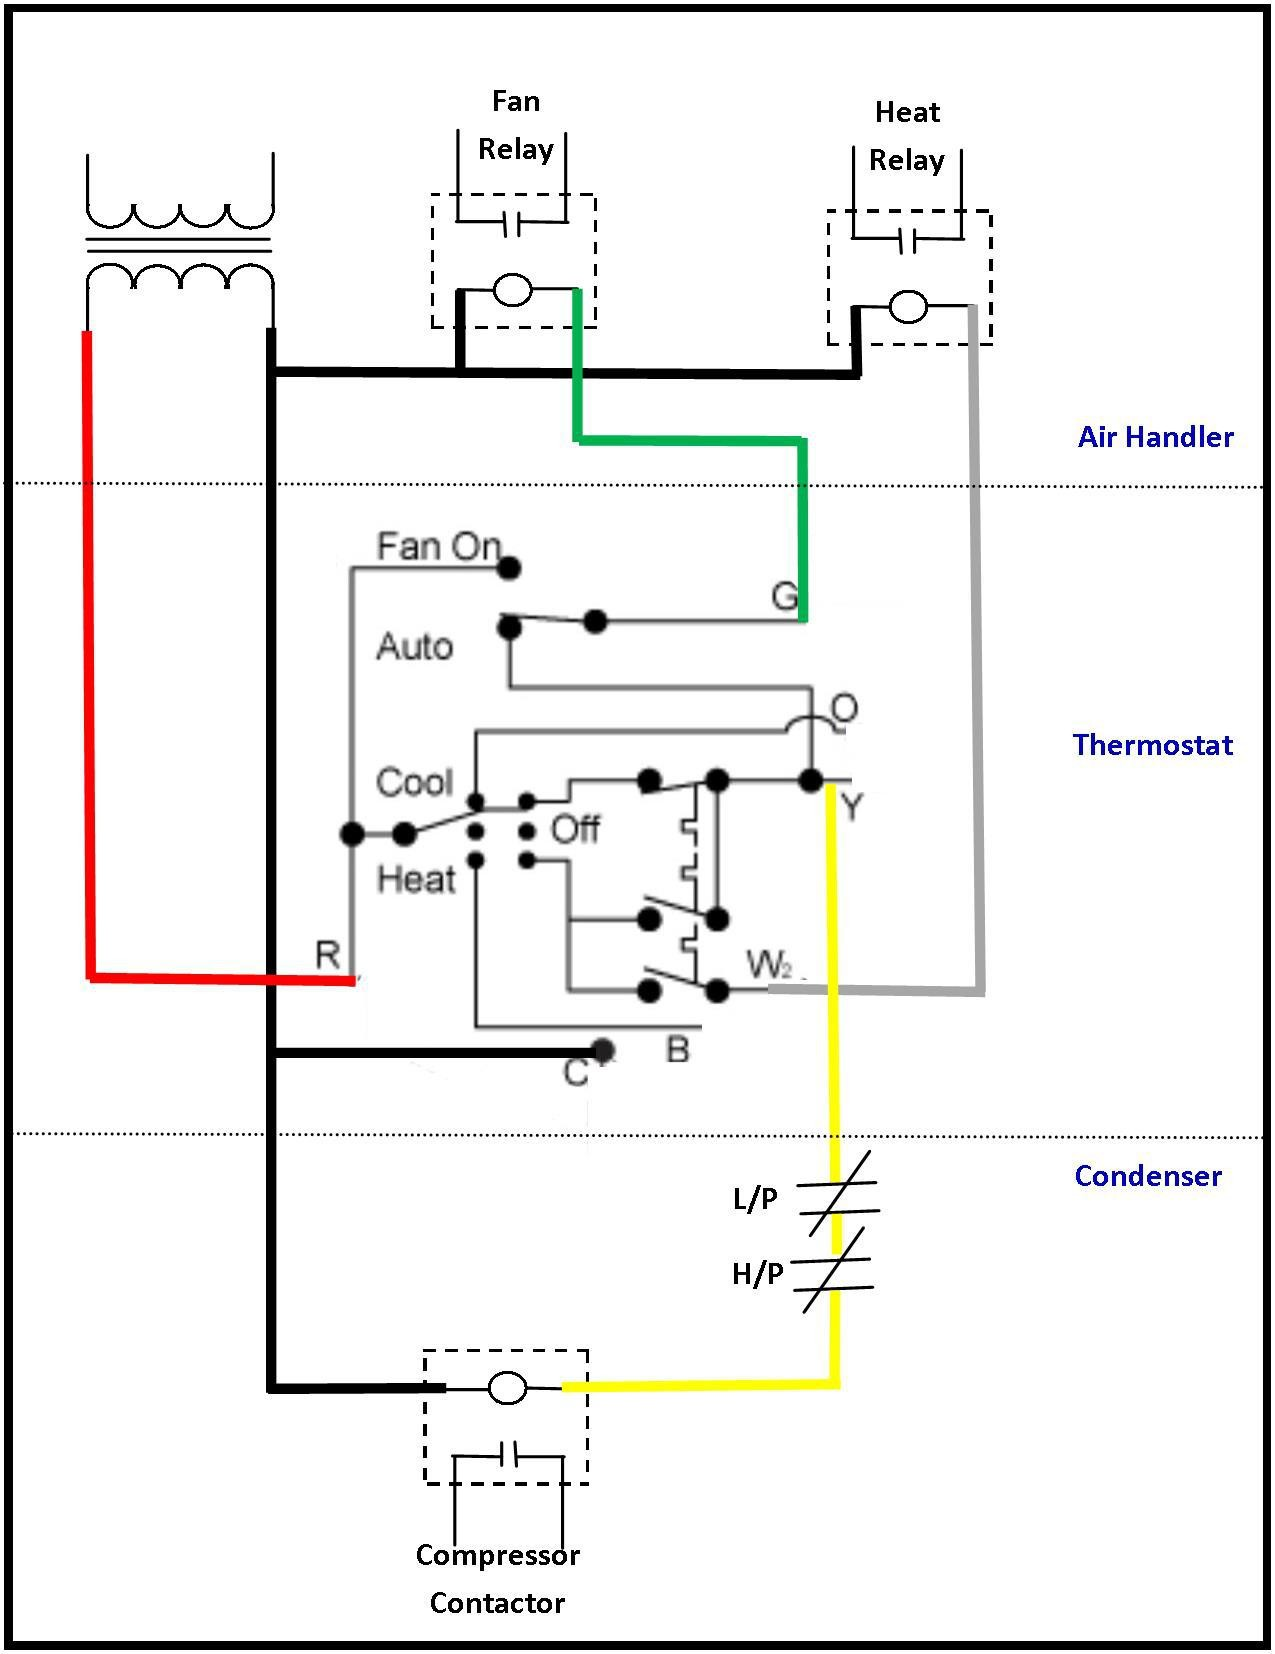 120 Volt Relay Wiring Diagram Beautiful Low Voltage Relay Wiring Diagram Contemporary Everything Of 120 Volt Relay Wiring Diagram